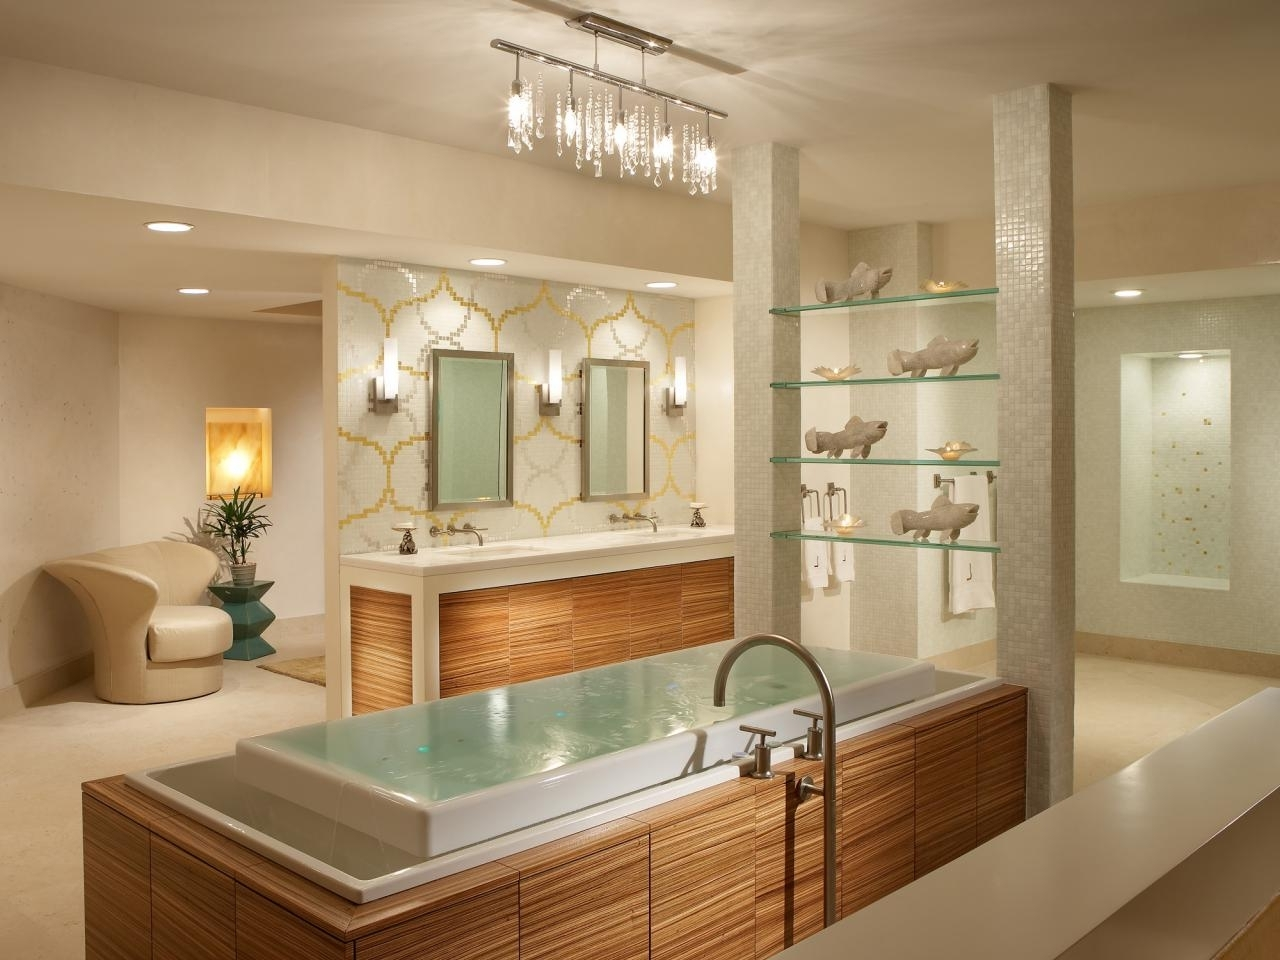 Chandelier Bathroom Lighting Regarding Famous Amusing Modern Bathroom Lighting Large Sink With A Small Chandelier (View 7 of 15)